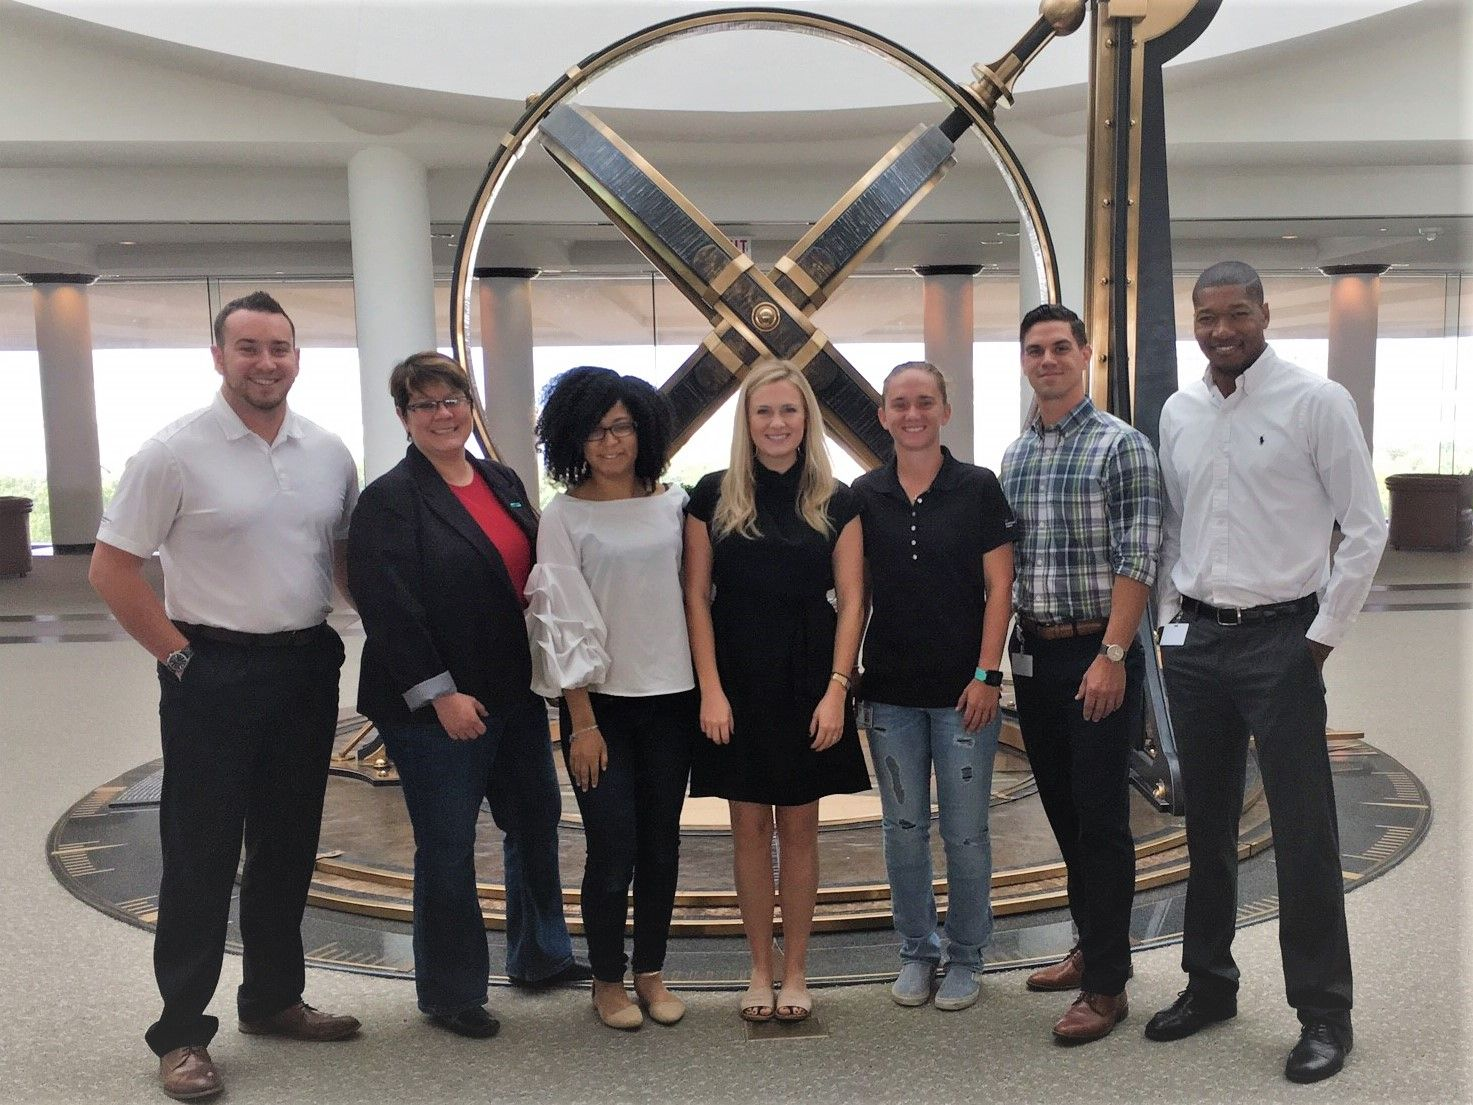 Four (4) recently transitioned veterans @ HPE with their teammates in Plano, TX